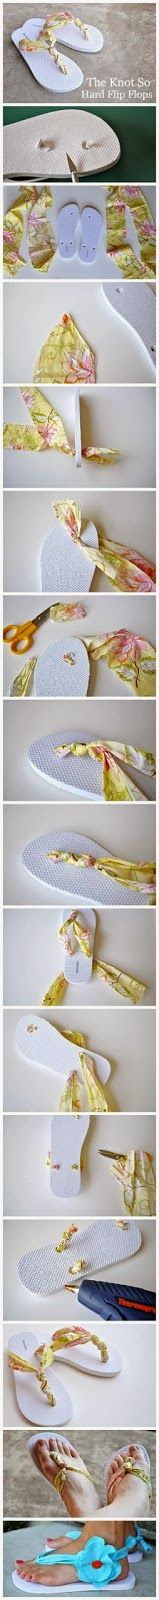 Easy Way To Make a Flip Flops